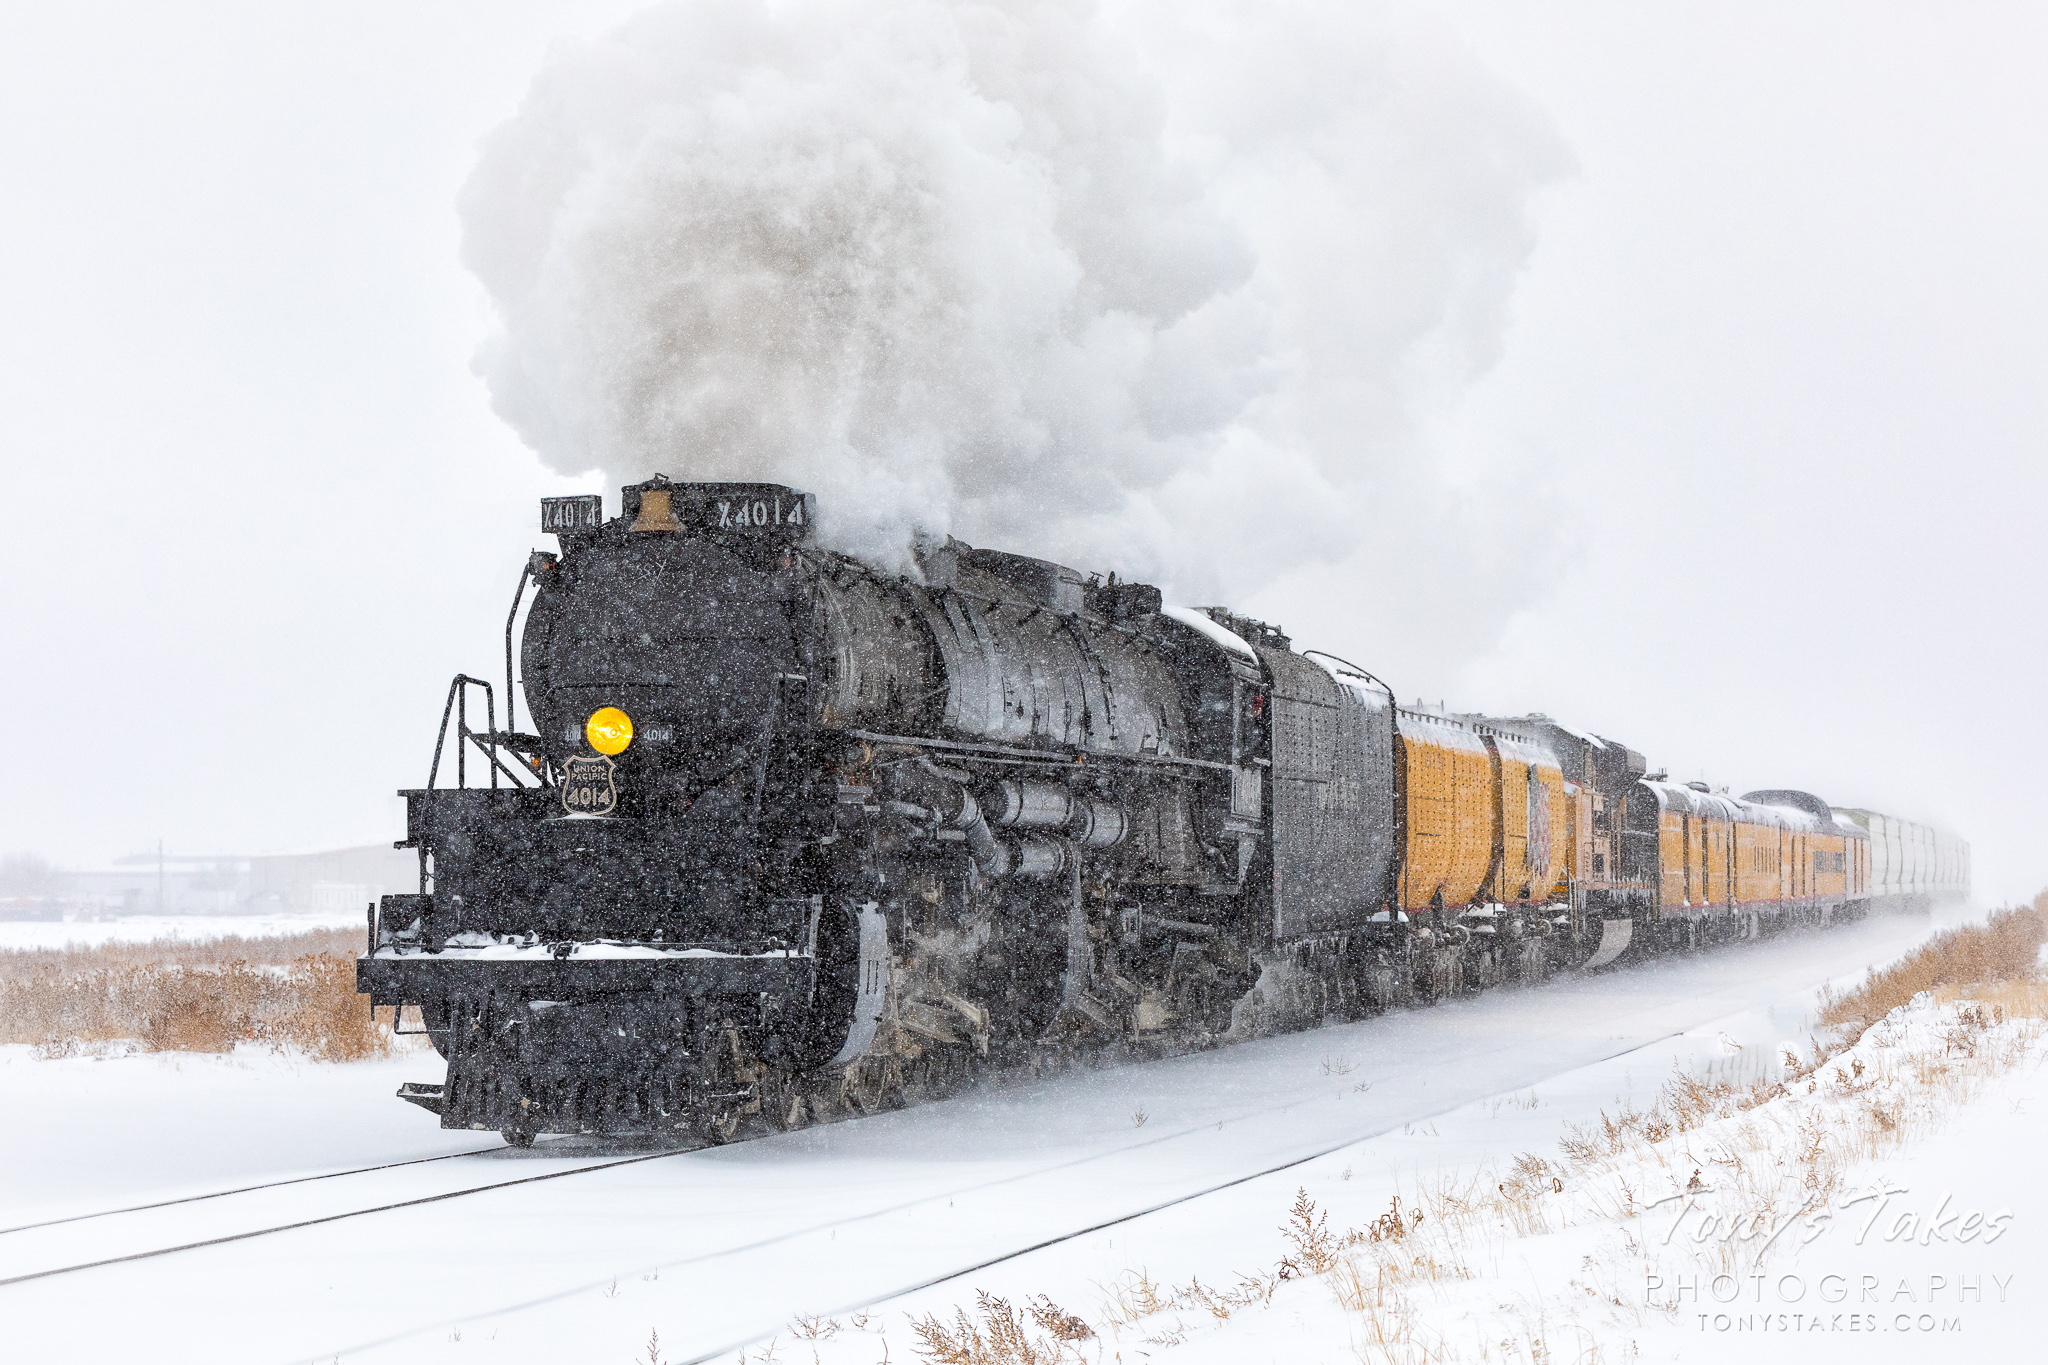 Union Pacific's Big Boy 4014 rumbles through a snowstorm north of Denver, Colorado. (© Tony's Takes)